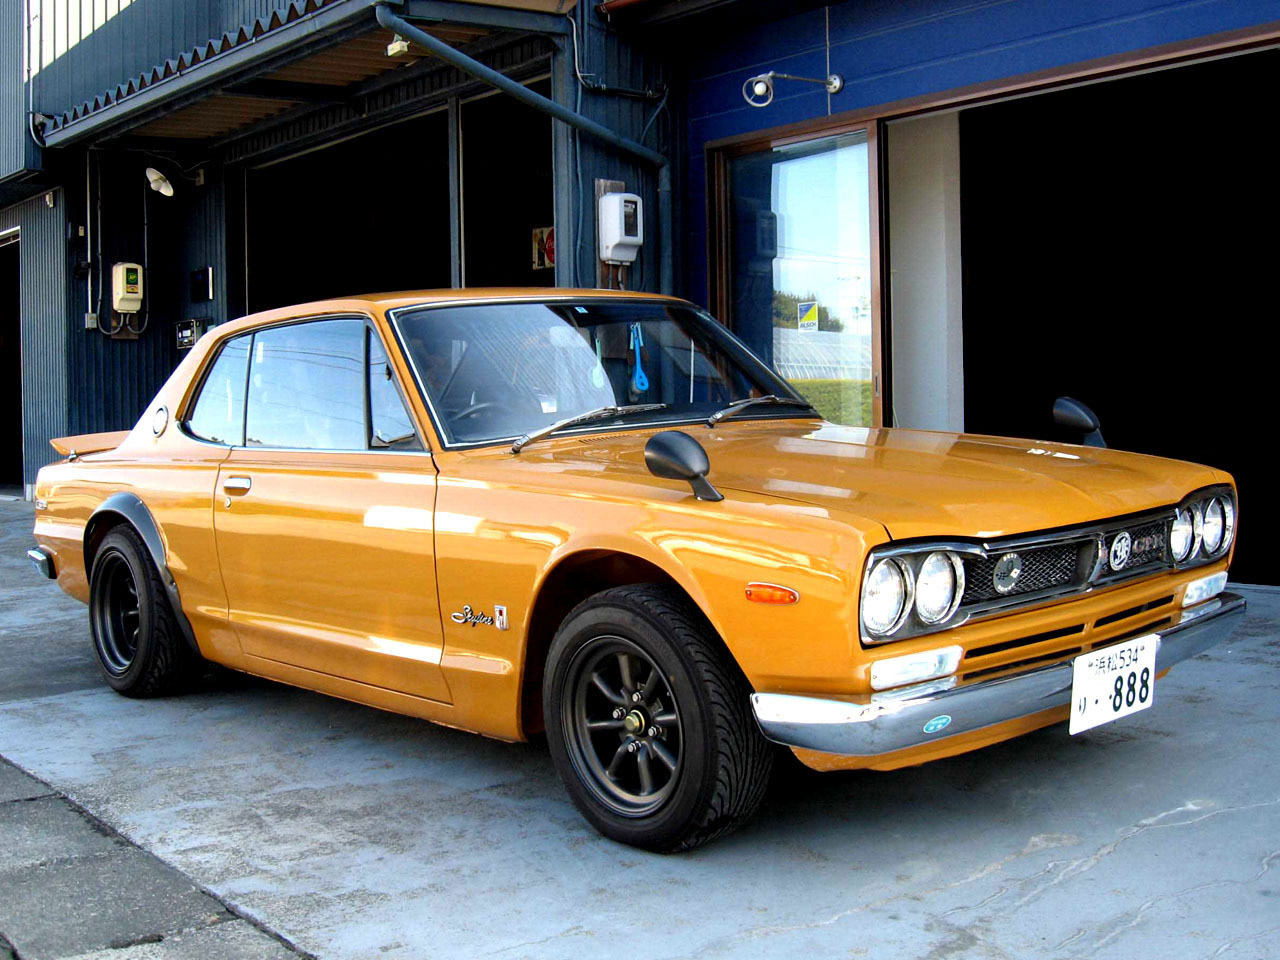 Brilliant 1970 Nissan Skyline 2000 GTR 1280 x 960 · 296 kB · jpeg